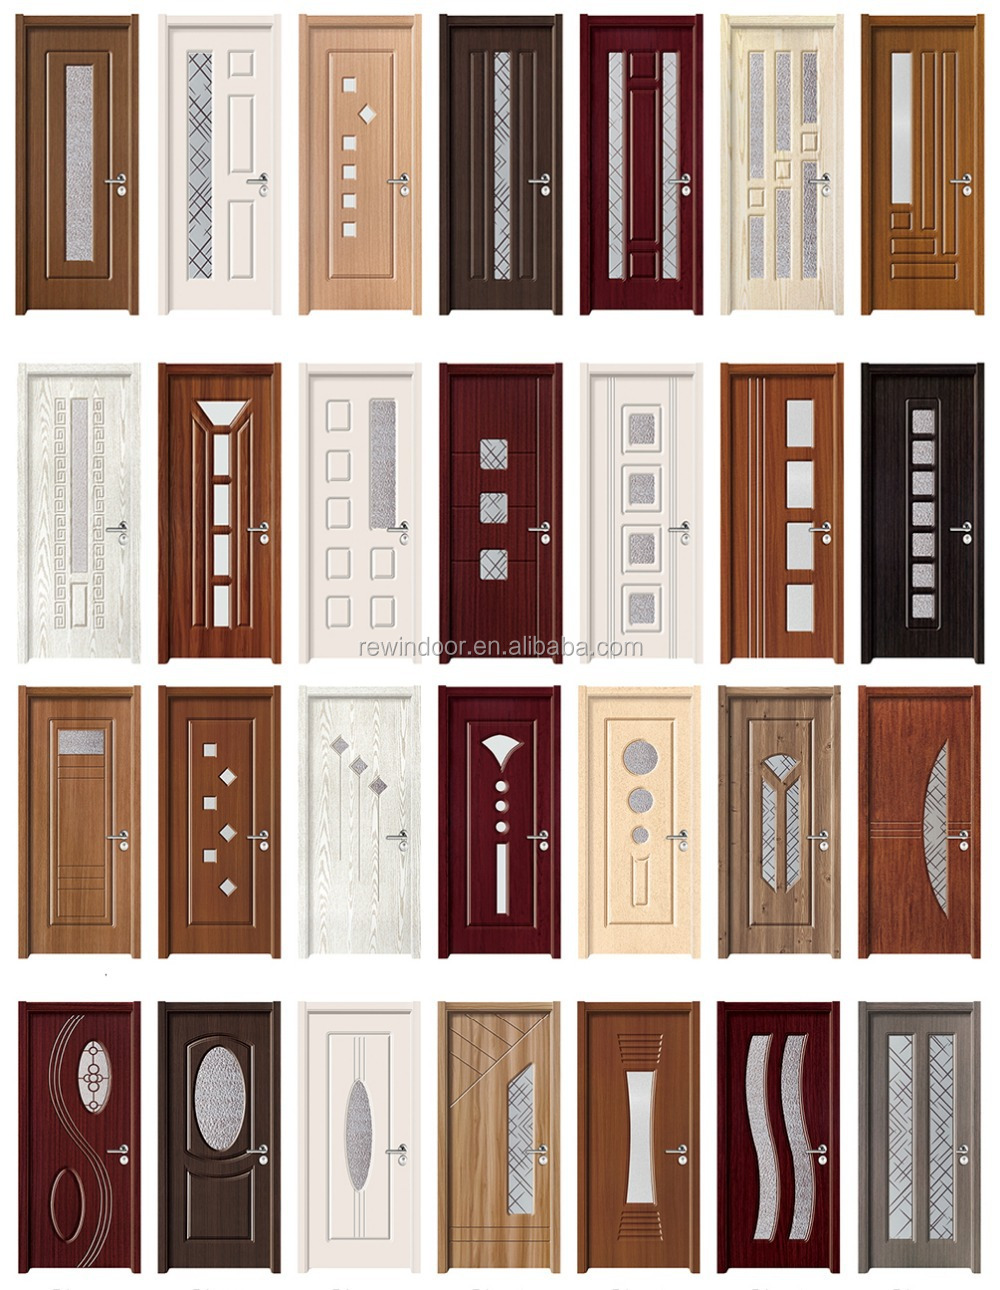 bathroom pvc doors prices fiber bathroom door teak wood main door designs - Bathroom Doors Design